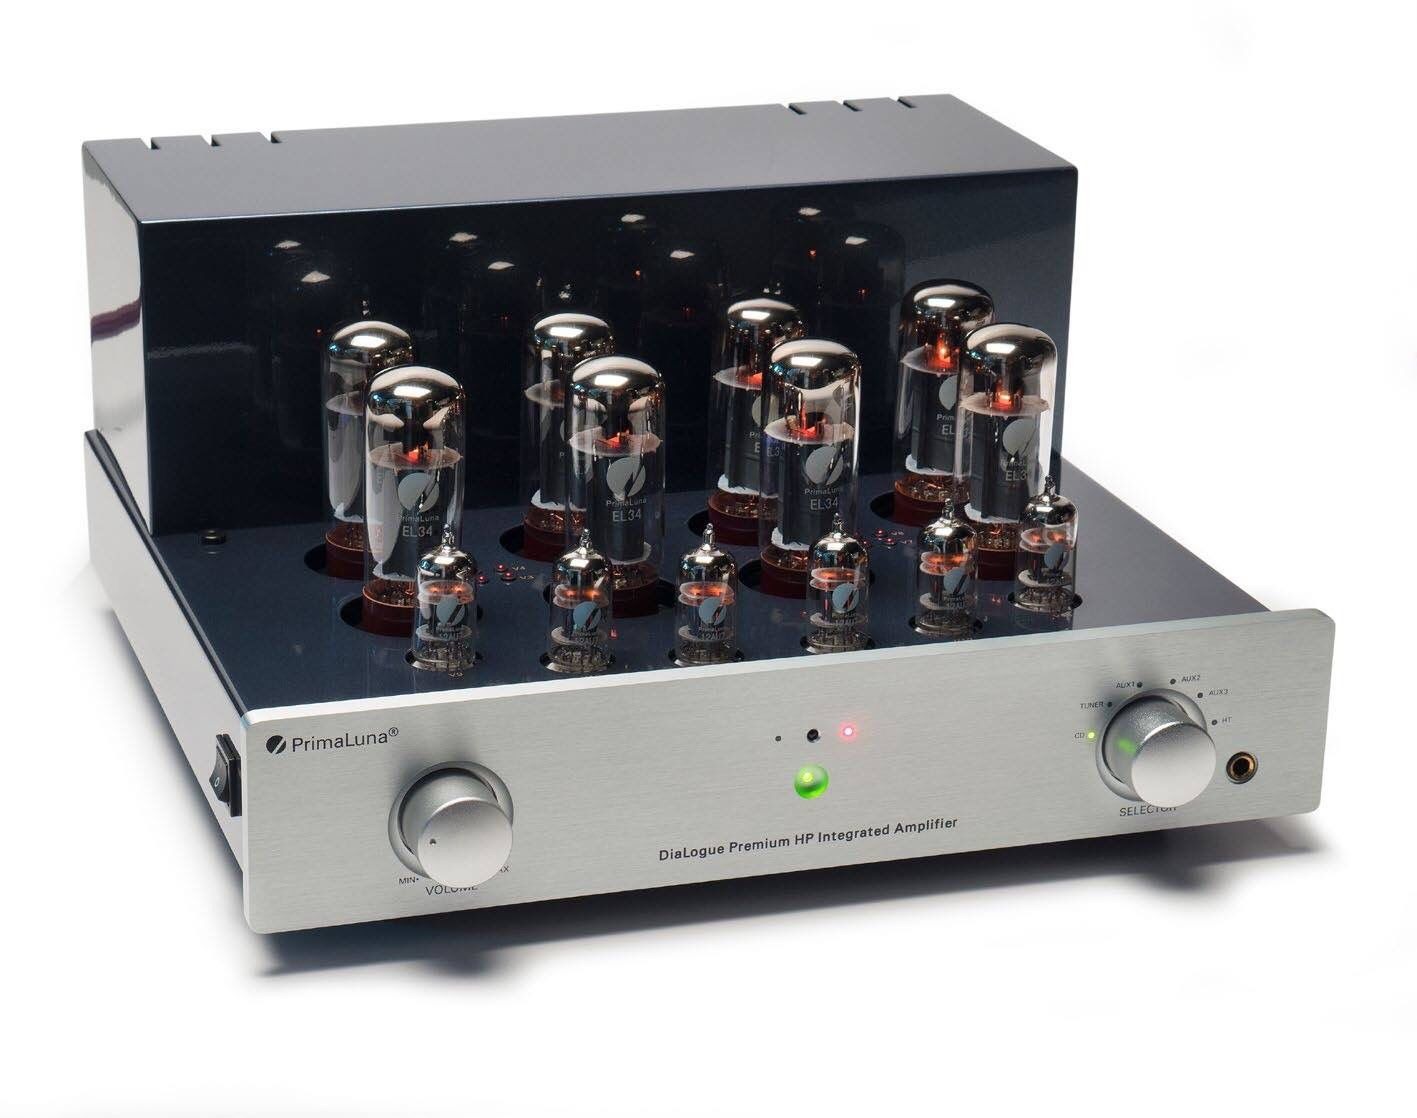 Primaluna Dialogue Premium Hp Integrated Amplifier One Of The